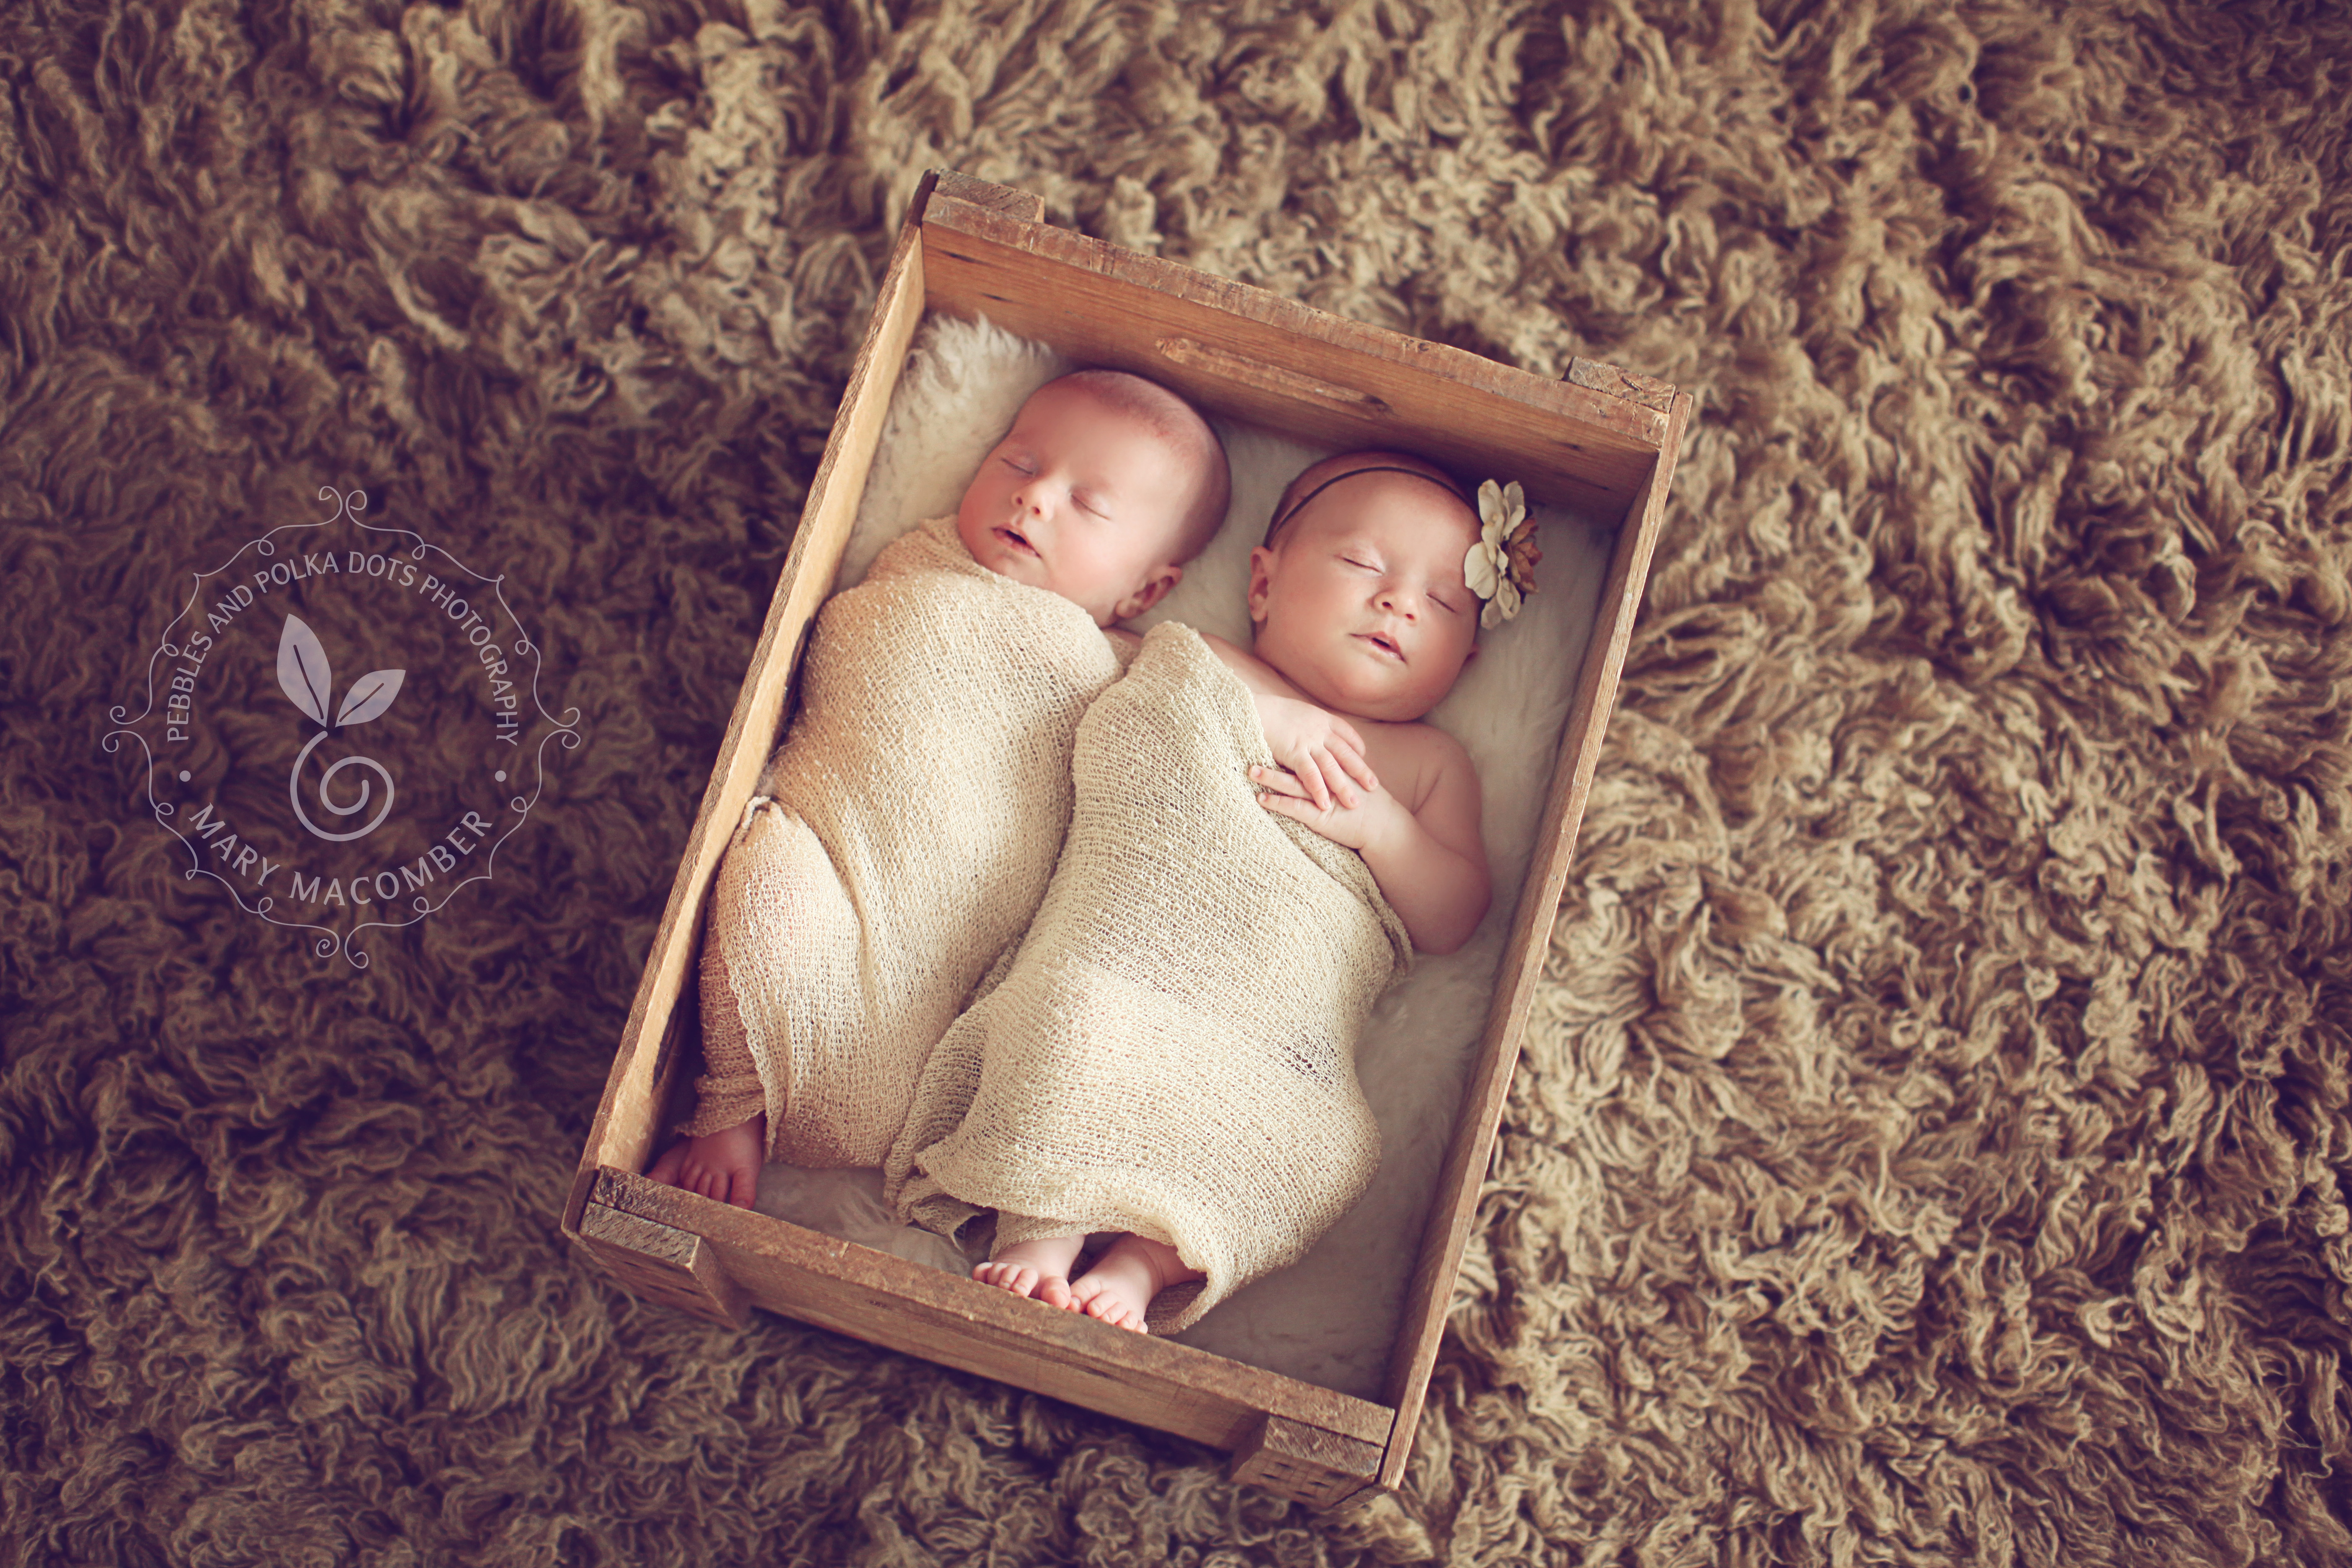 6 week old twins leo and lola worcester ma newborn photographer